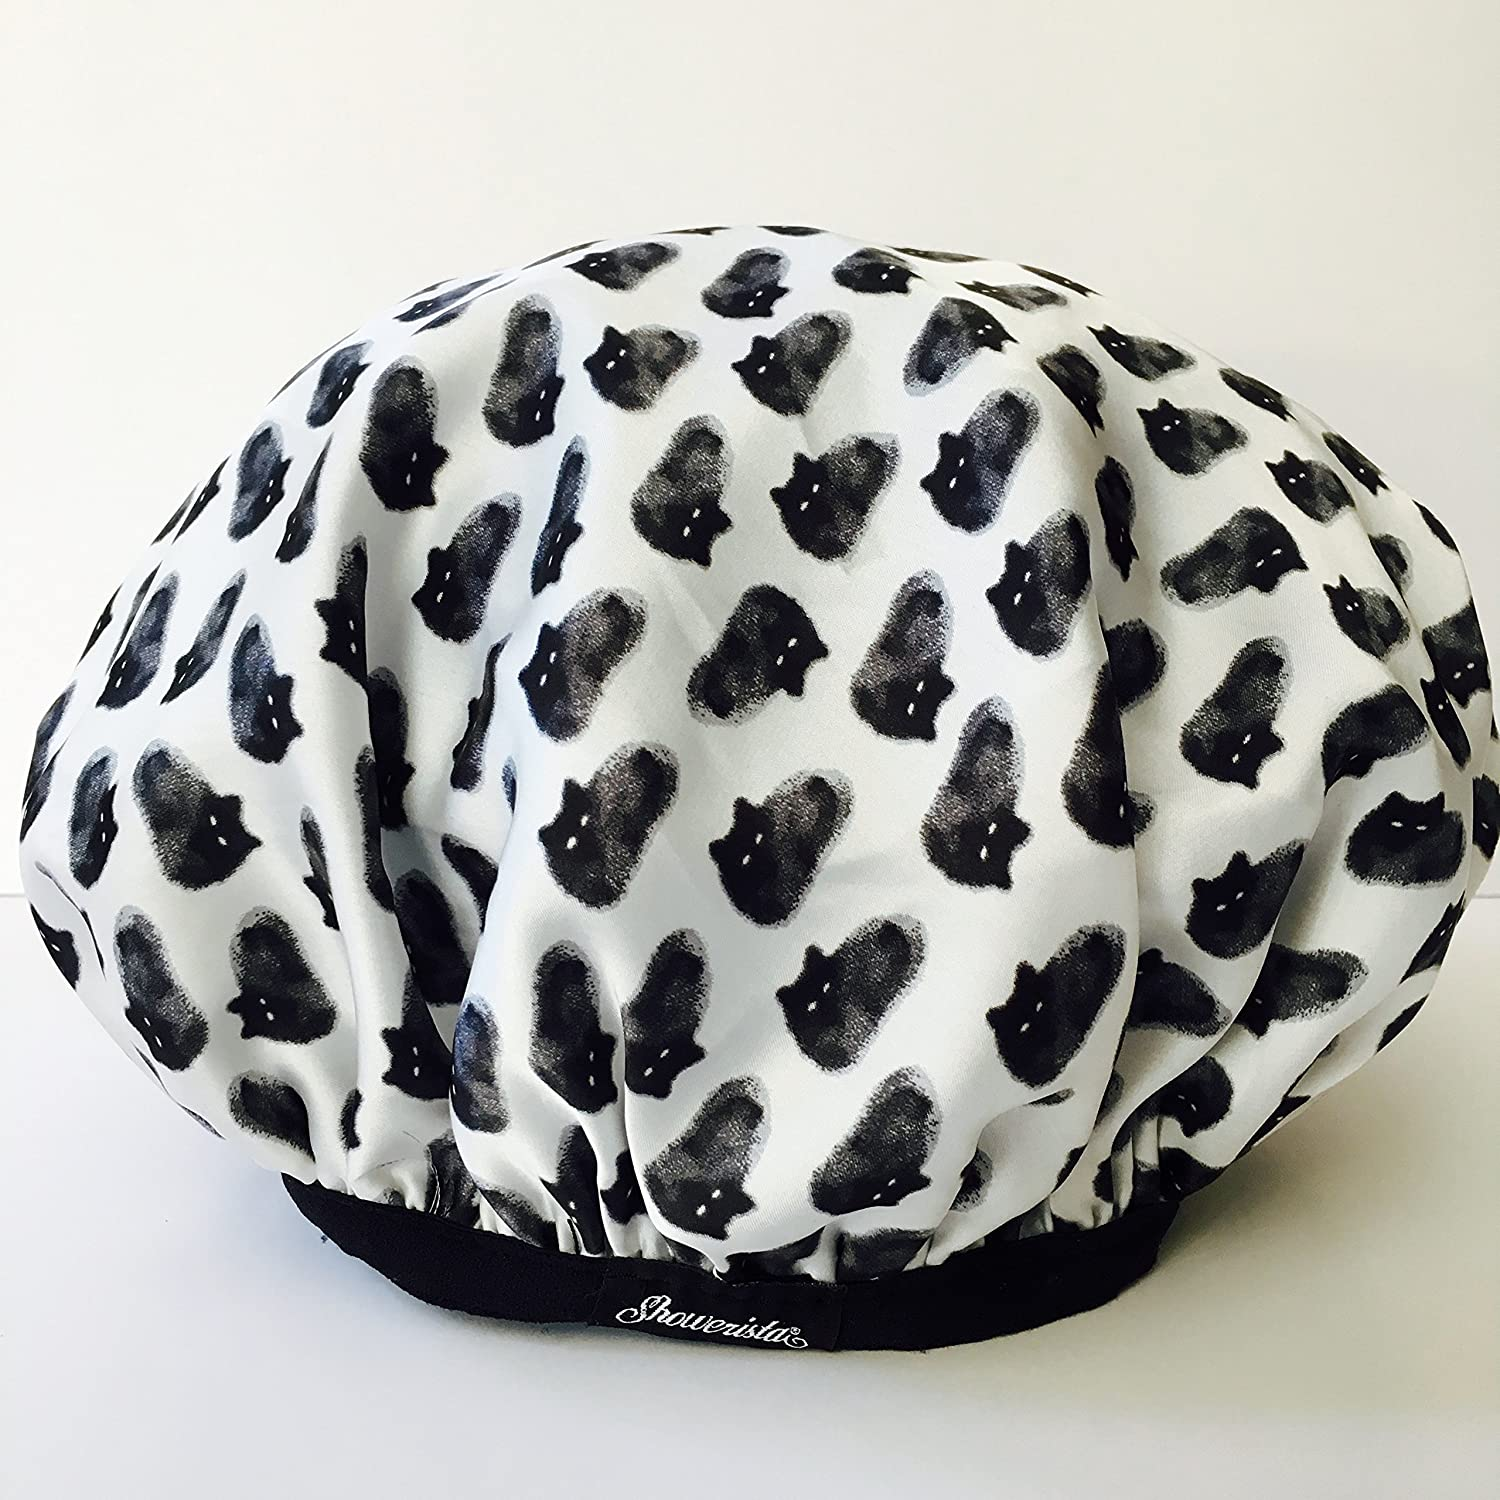 Oversized, Bouffant Shower Cap, Reusable, Kitty Cat Shower Cap by Showerista, Made in USA